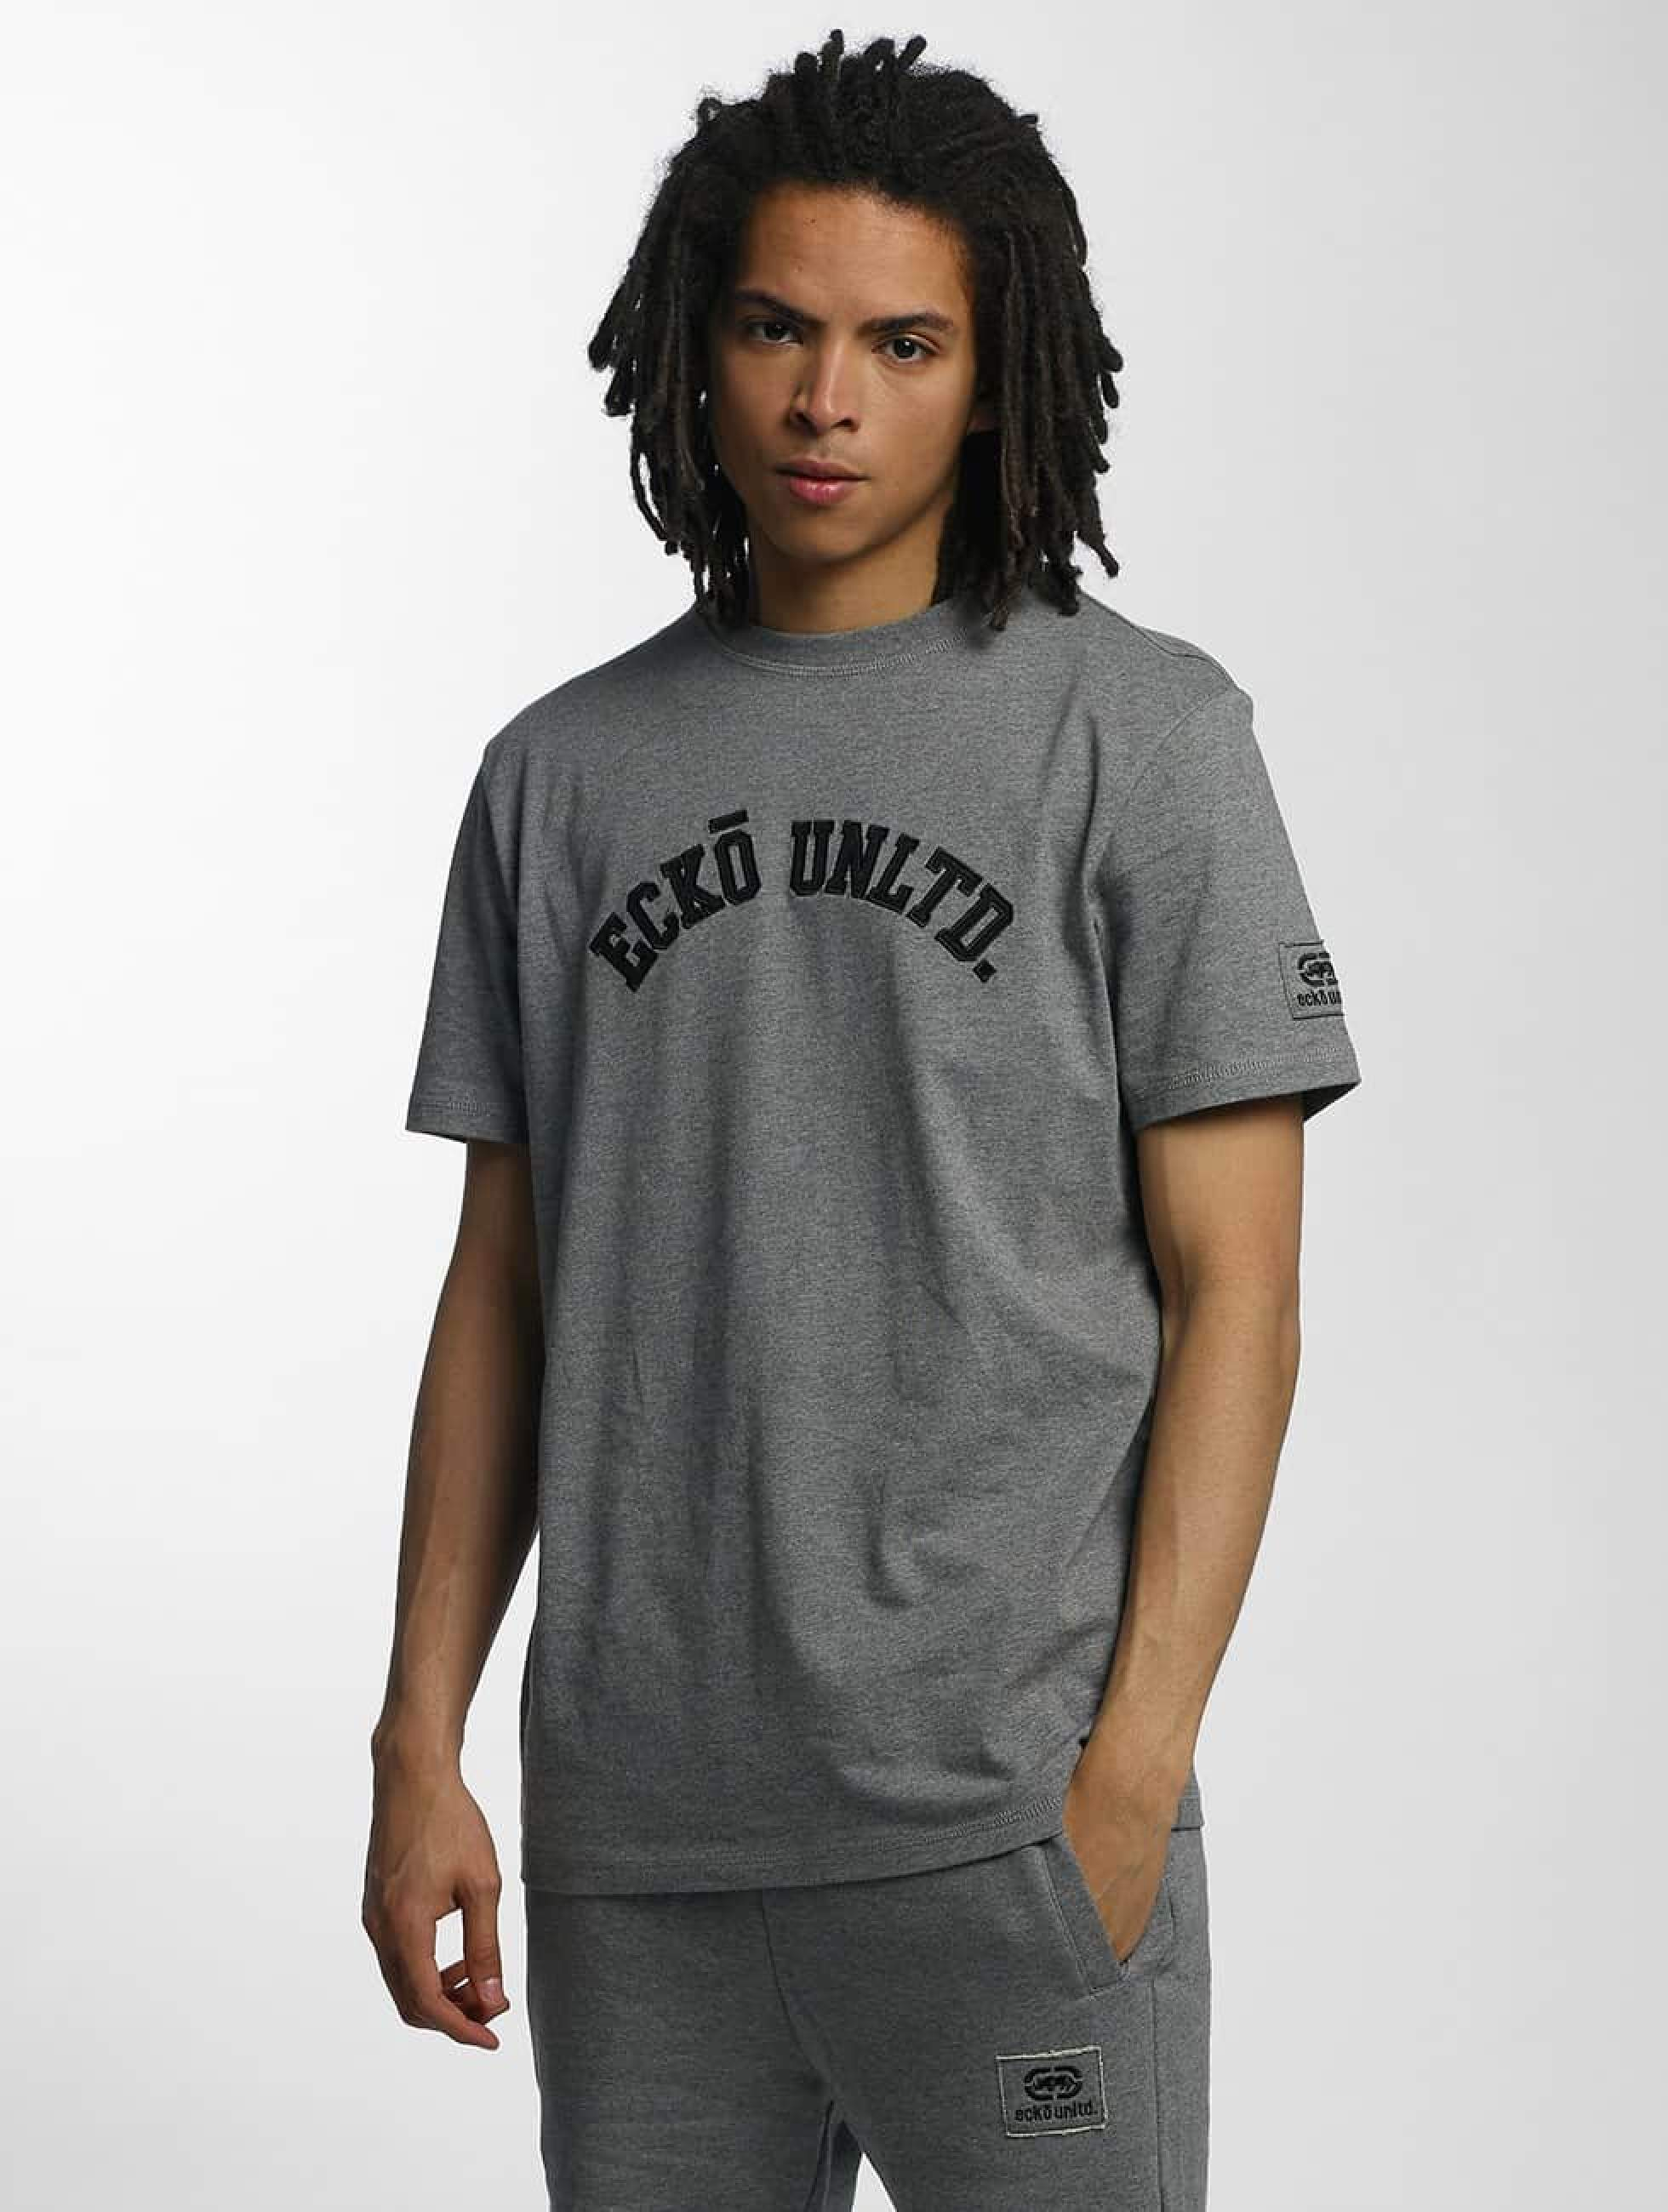 Ecko Unltd. / T-Shirt Melange in grey M